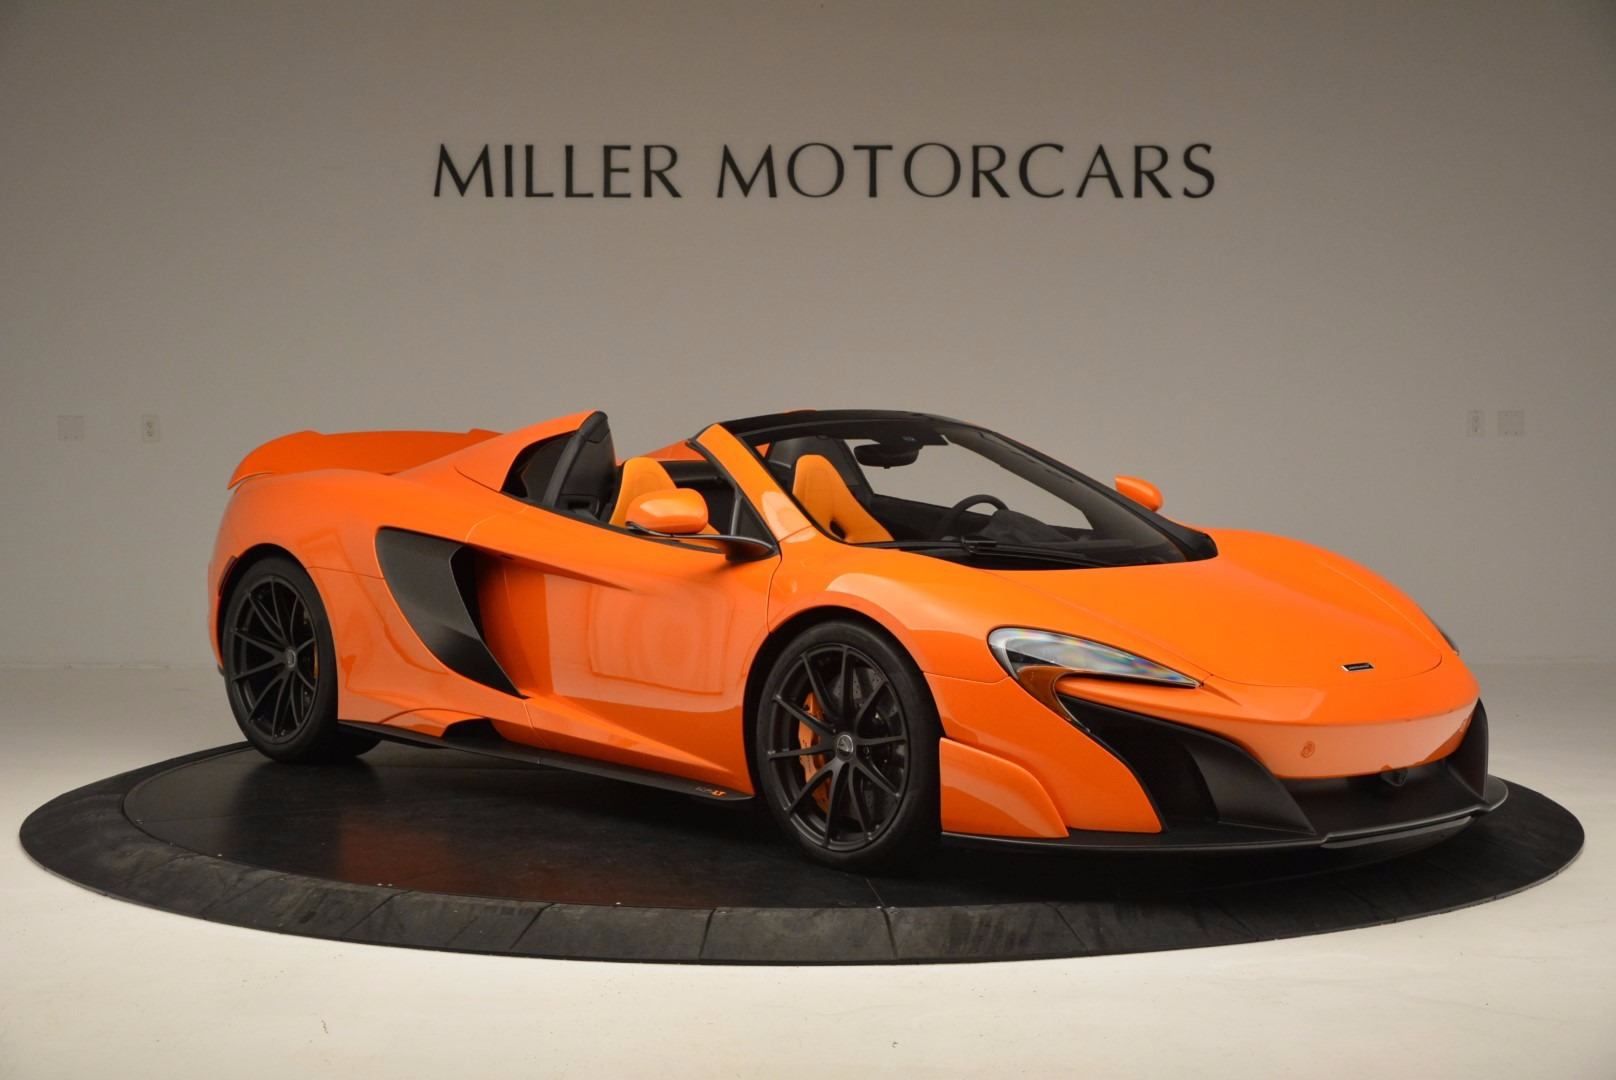 Used 2016 McLaren 675LT Spider Convertible For Sale In Greenwich, CT. Alfa Romeo of Greenwich, 3159 1150_p10